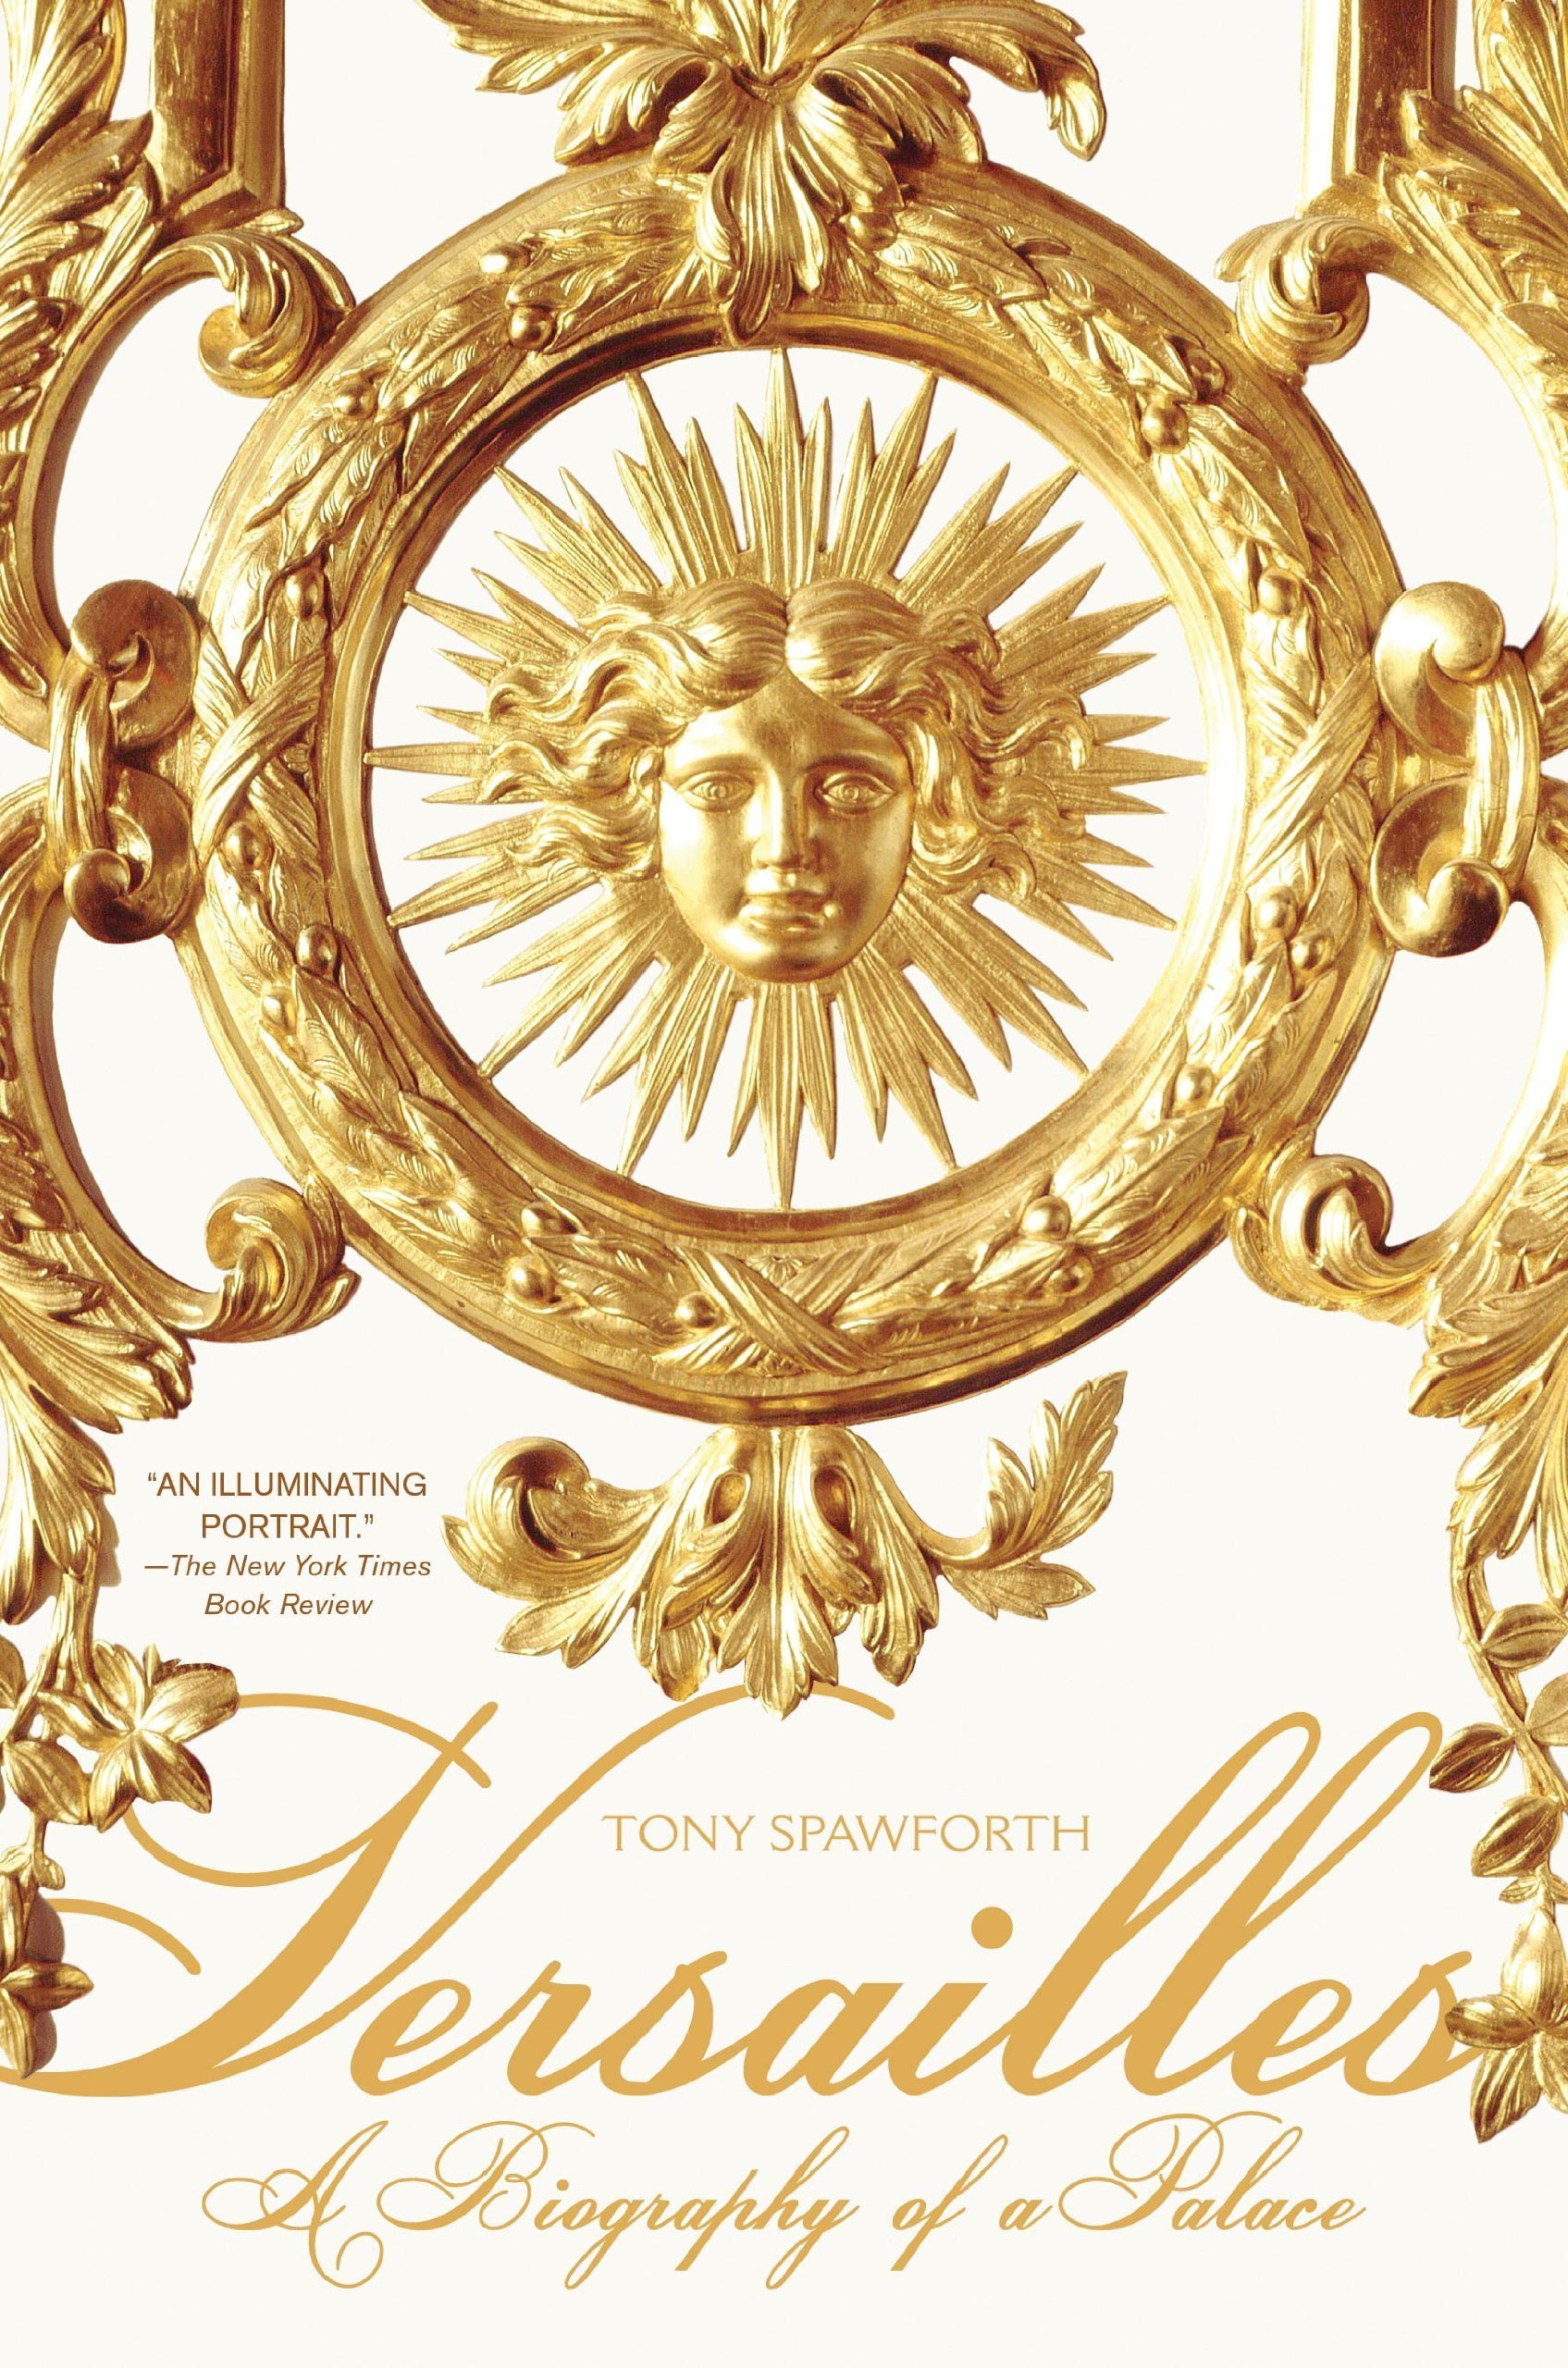 Versailles: A Biography of a Palace: Tony Spawforth: 8601405072450.